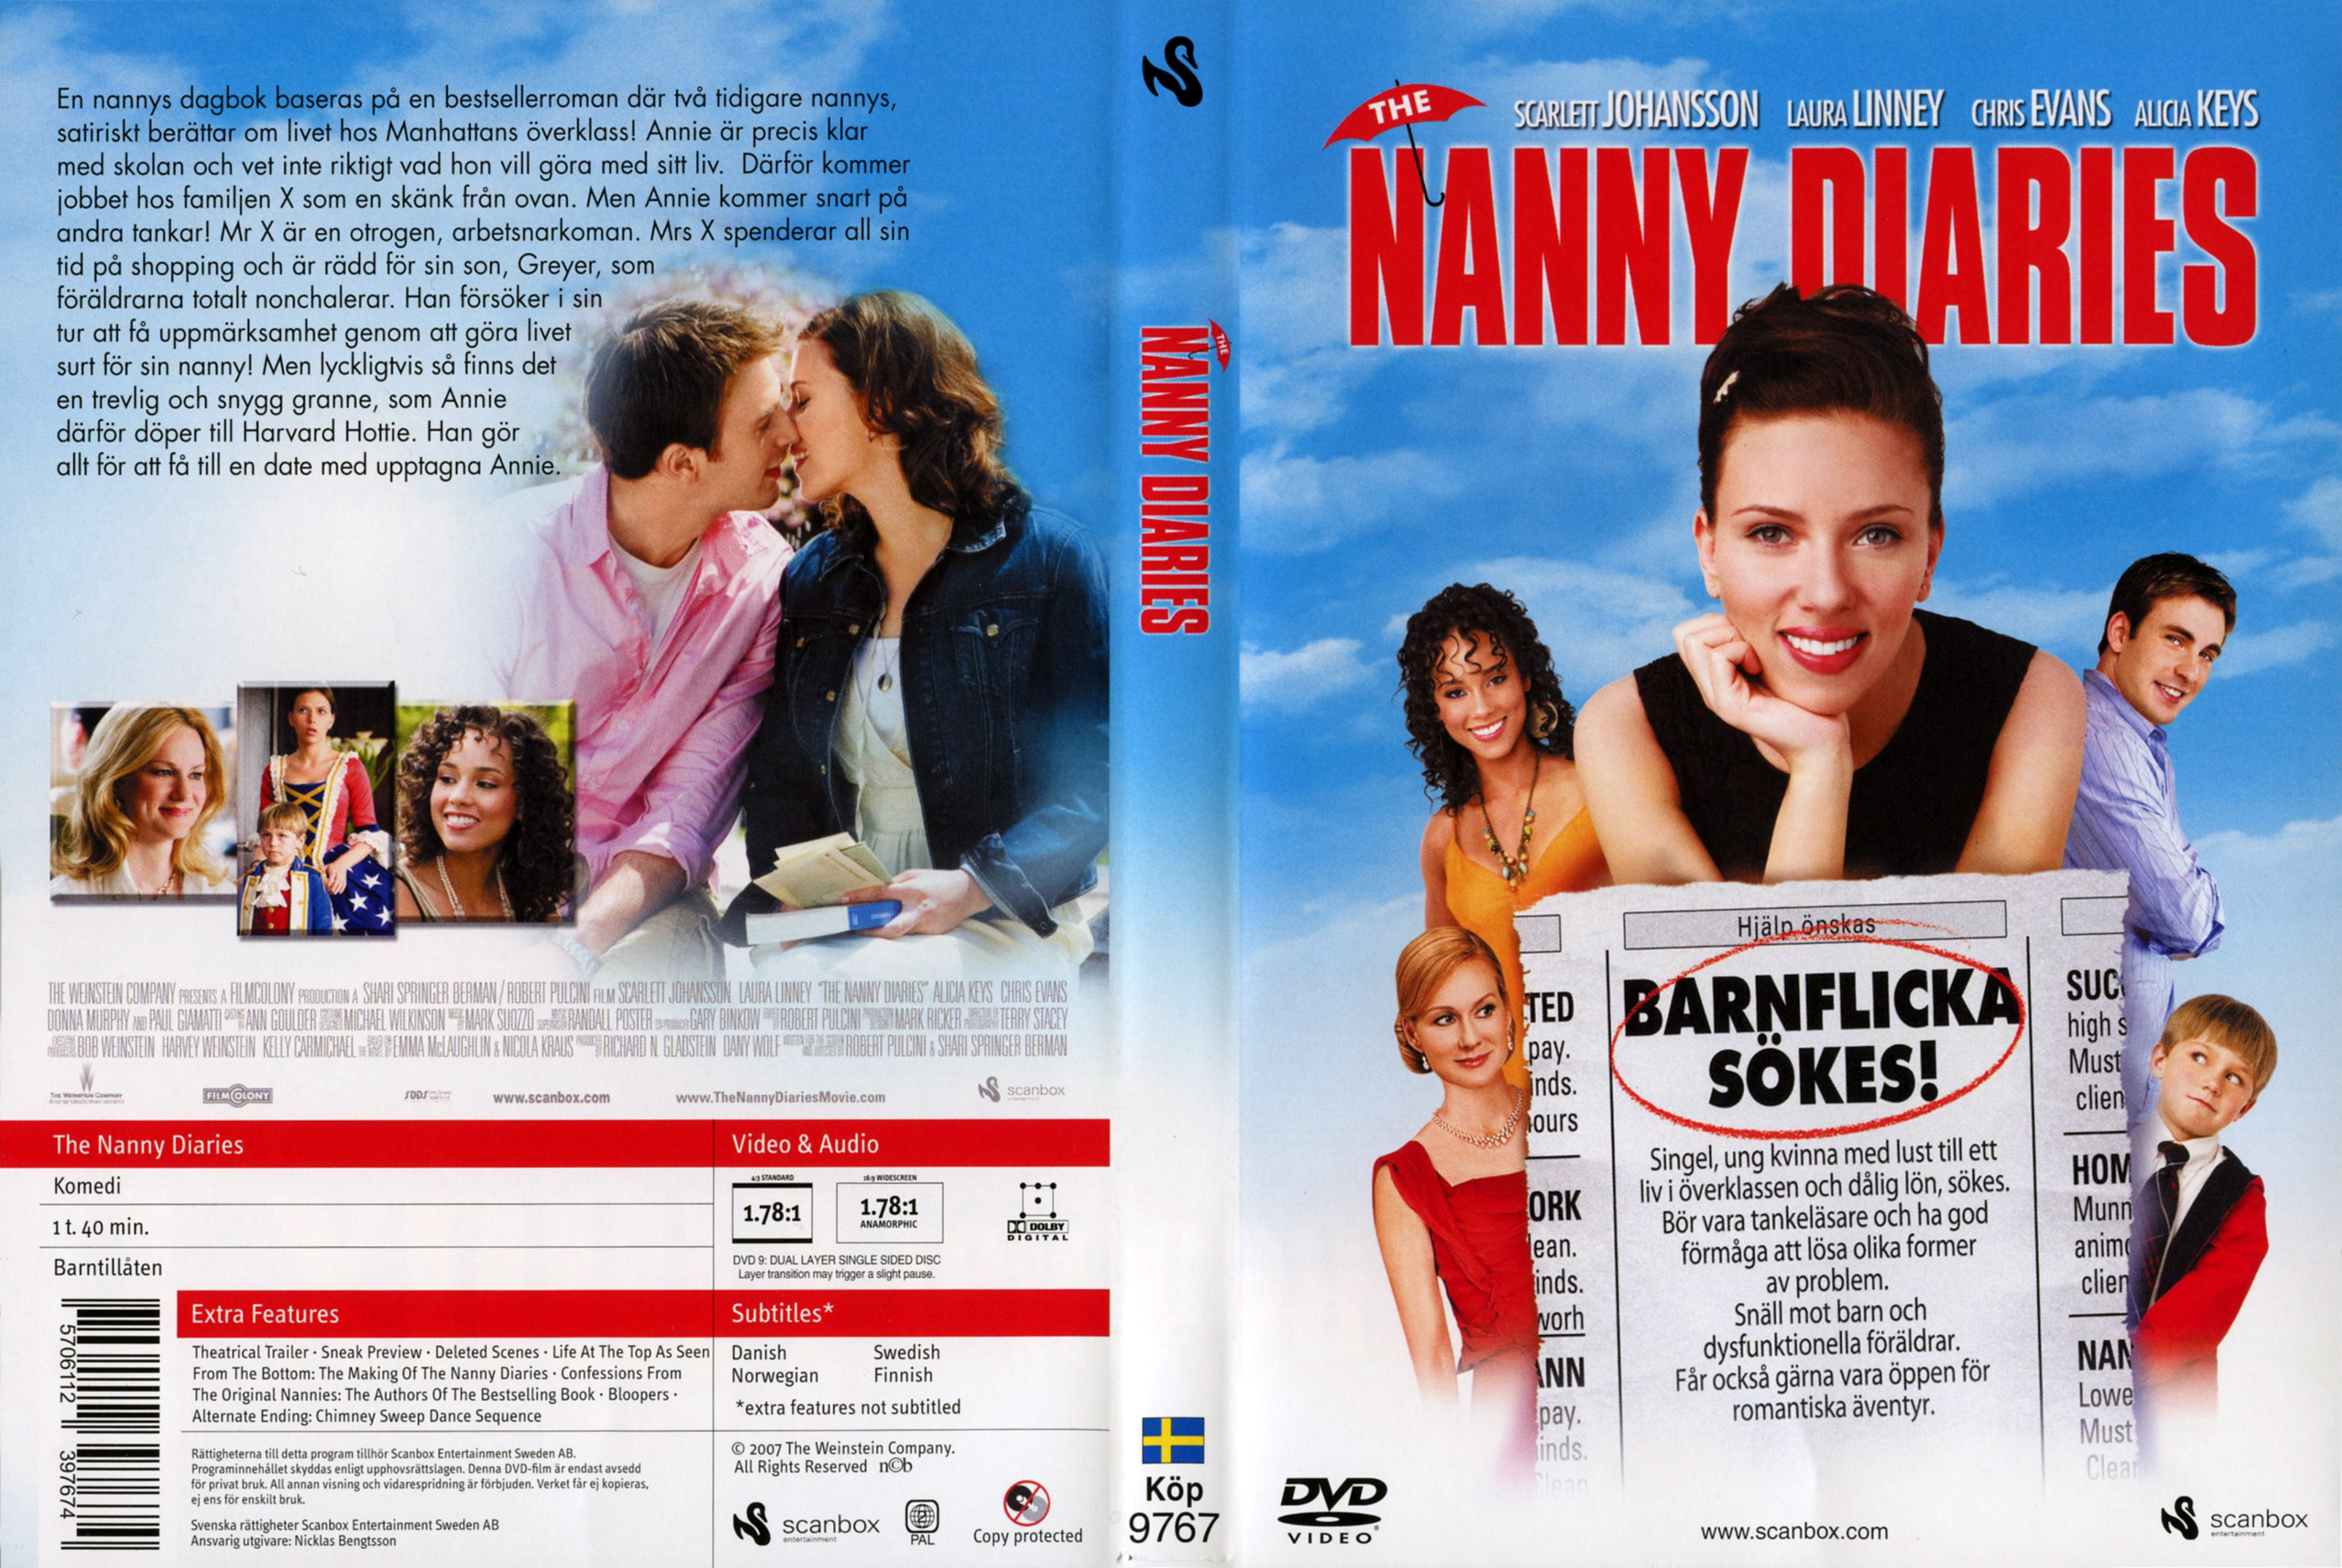 The nanny diaries - the nanny diaries tells the story of the emotional and often humorous journey of annie braddock